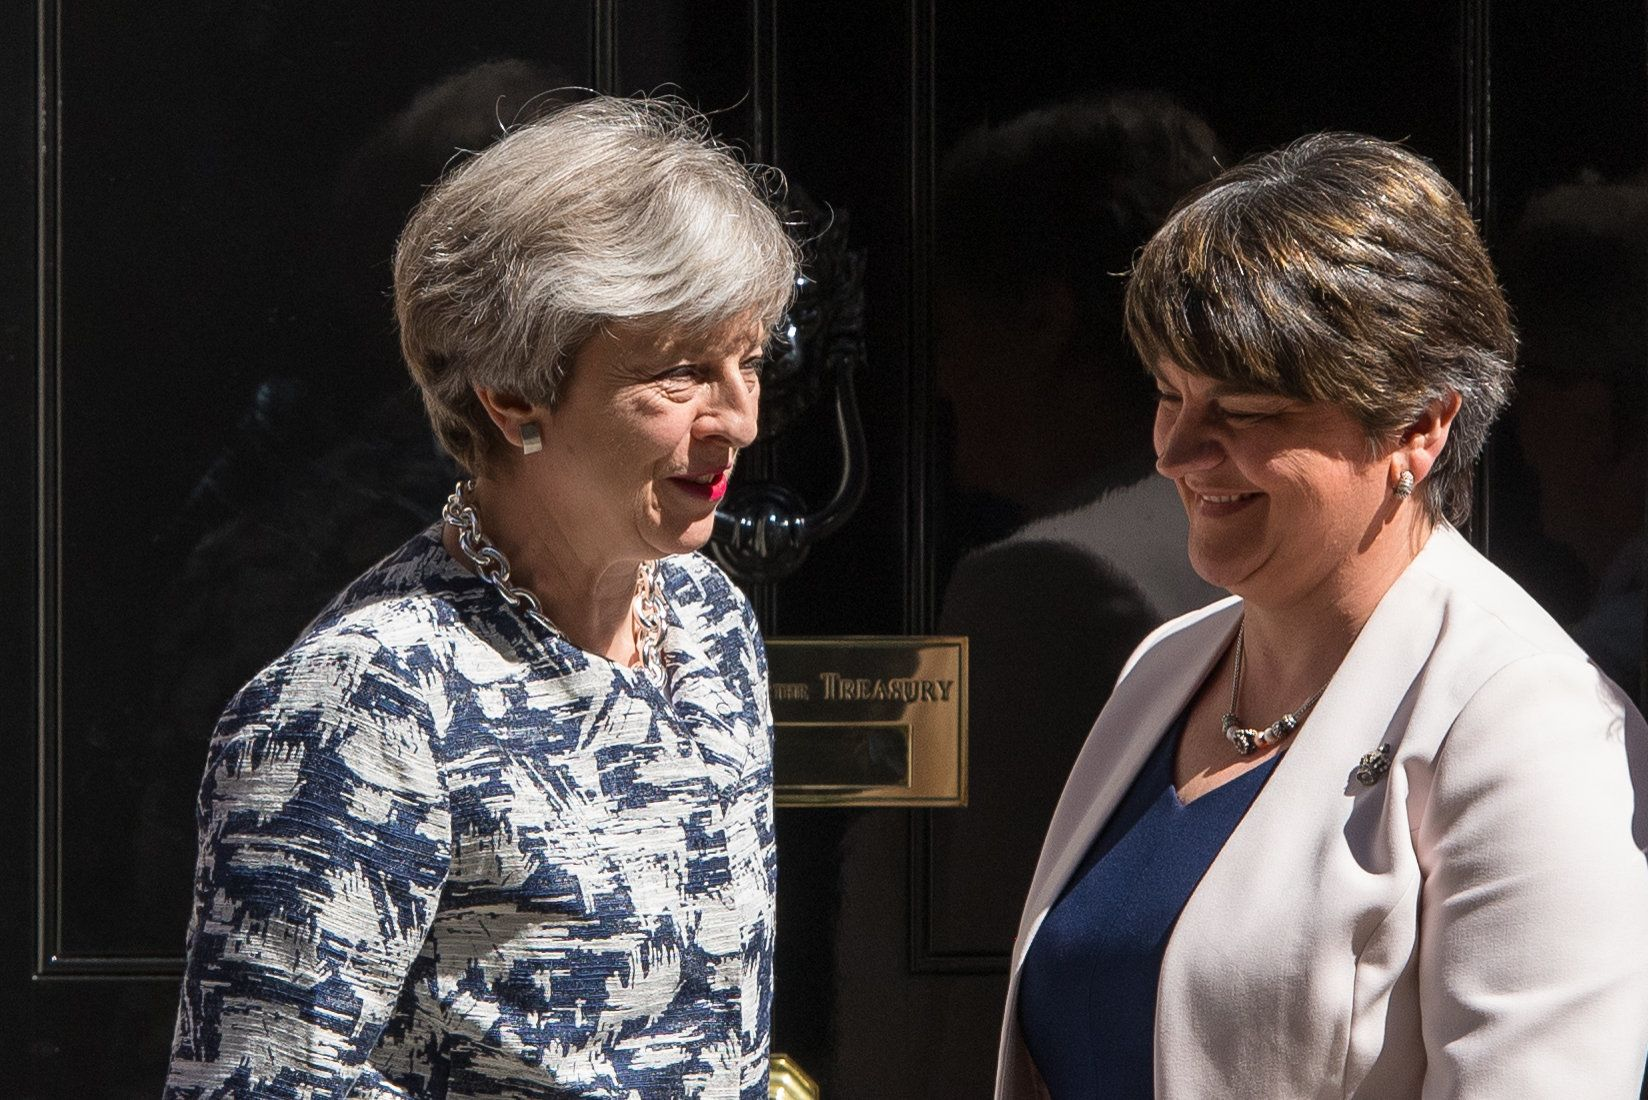 Theresa May's Deal With The DUP Faces Legal